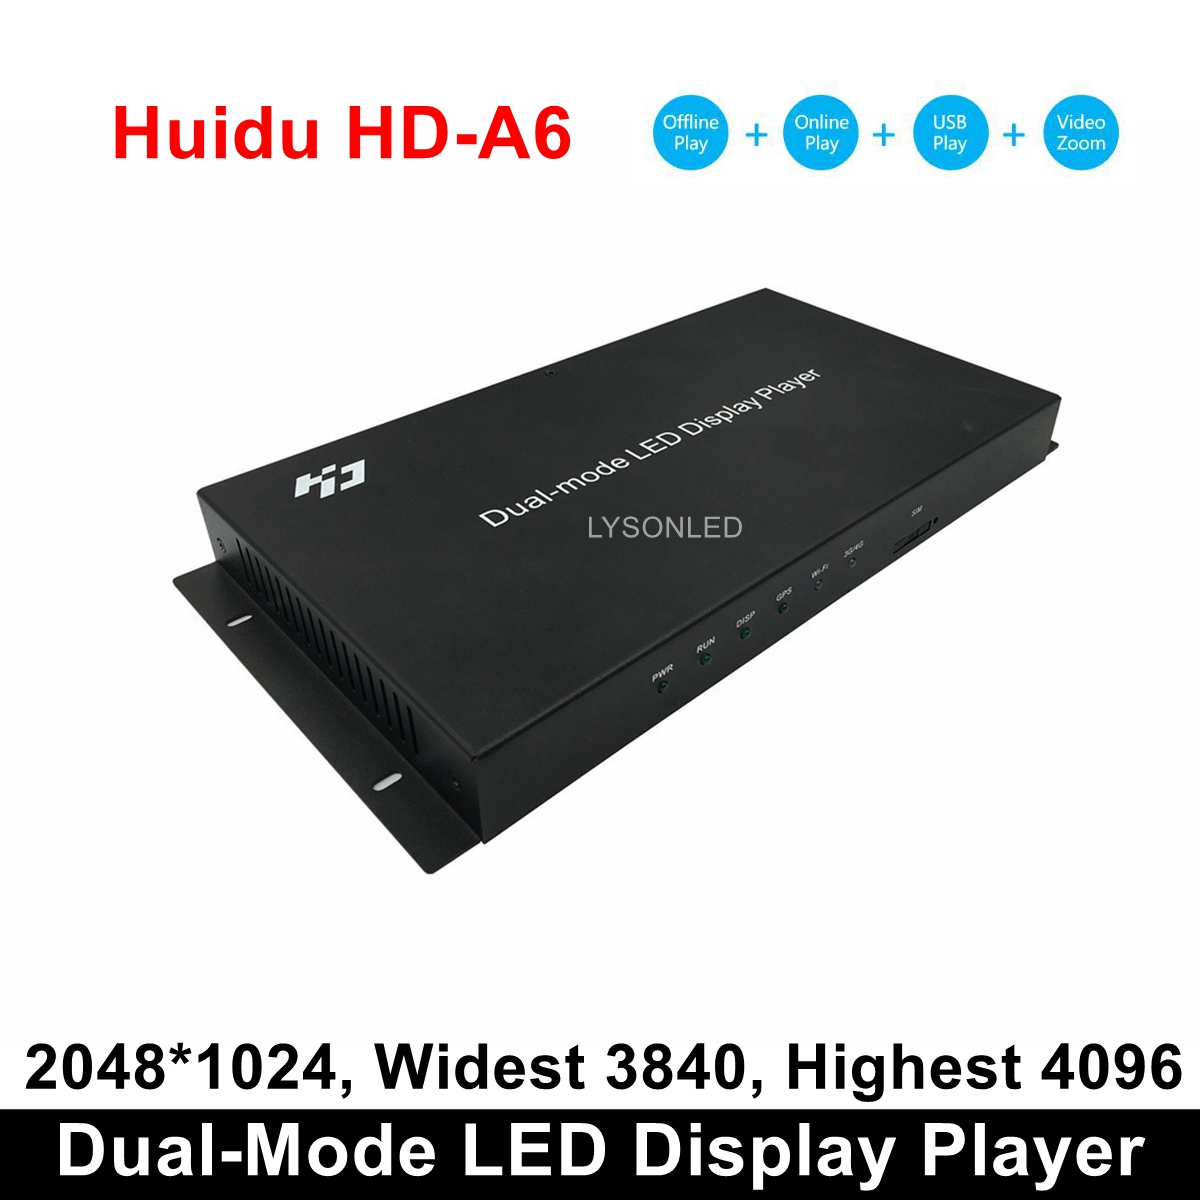 Huidu HD-A6 Asynch & Synch Large LED Video Display Player, Dual-Mode LED Video Controller 4 In 1 Player(WIFI/4G Expend Support)